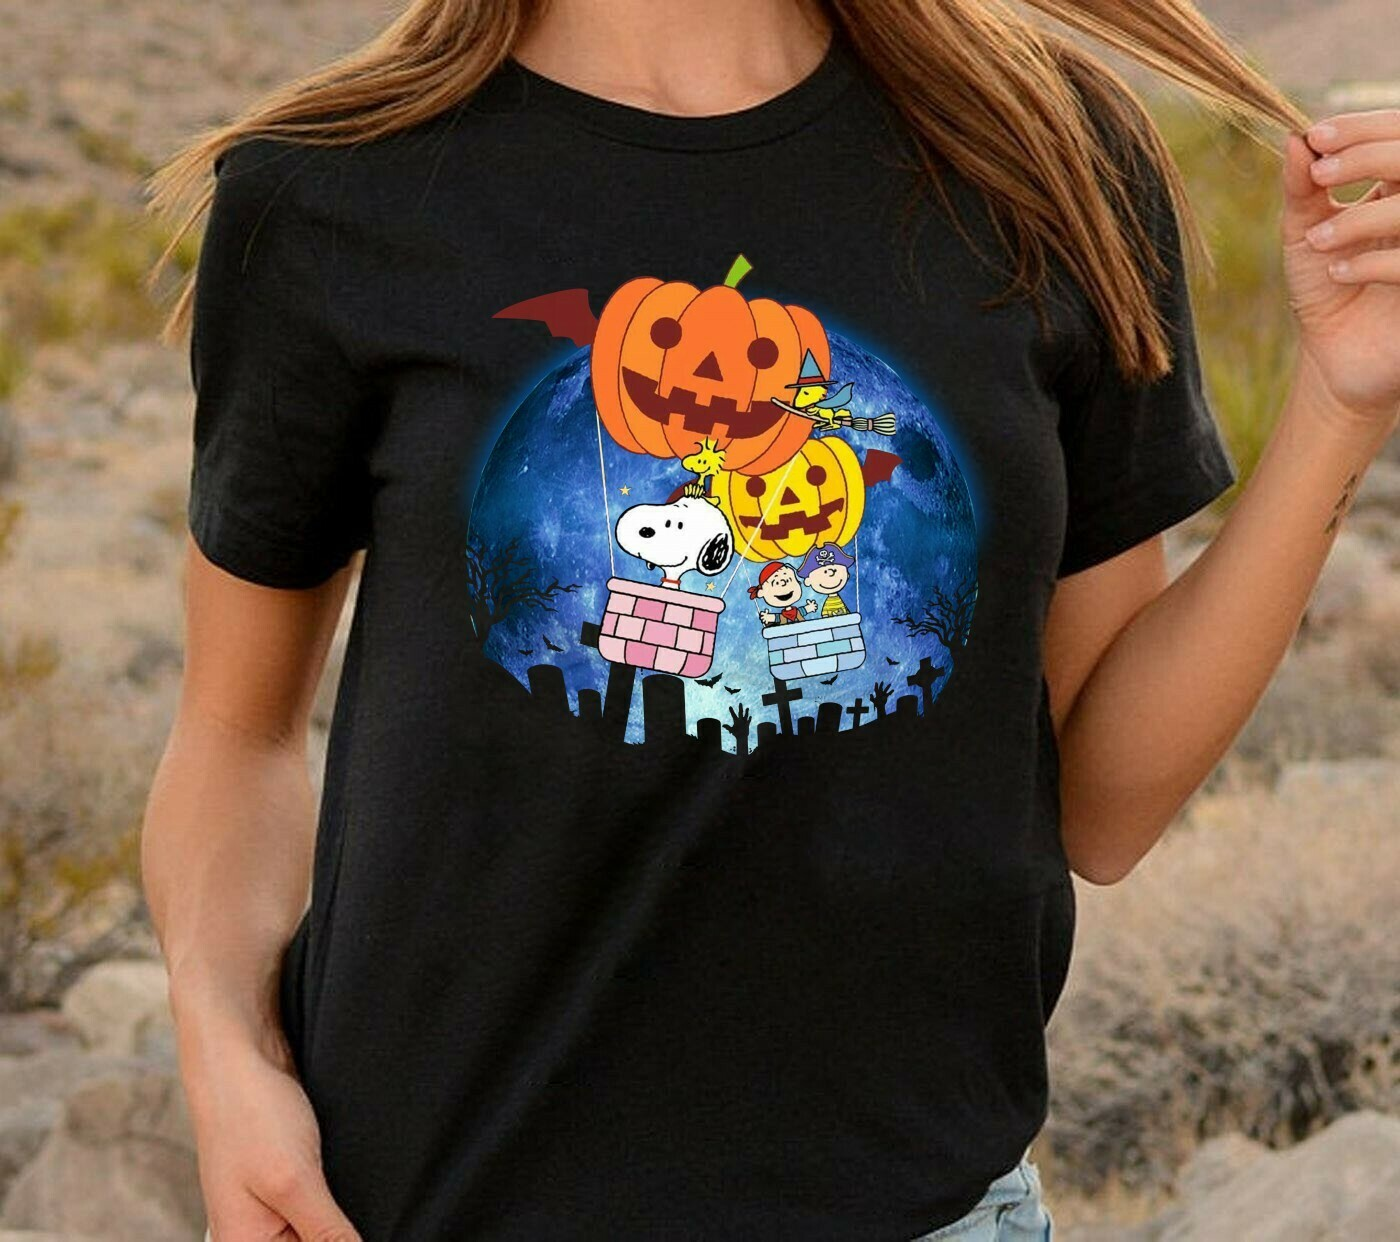 Snoopy In The Moonlight Snoopy Charlie Brown And Peanuts Witch Halloween Costume,Ghost Bat Gifts Best Friends Family Vacation Unisex T-Shirt Long Sleeve Sweatshirt Hoodie Jolly Family Gifts